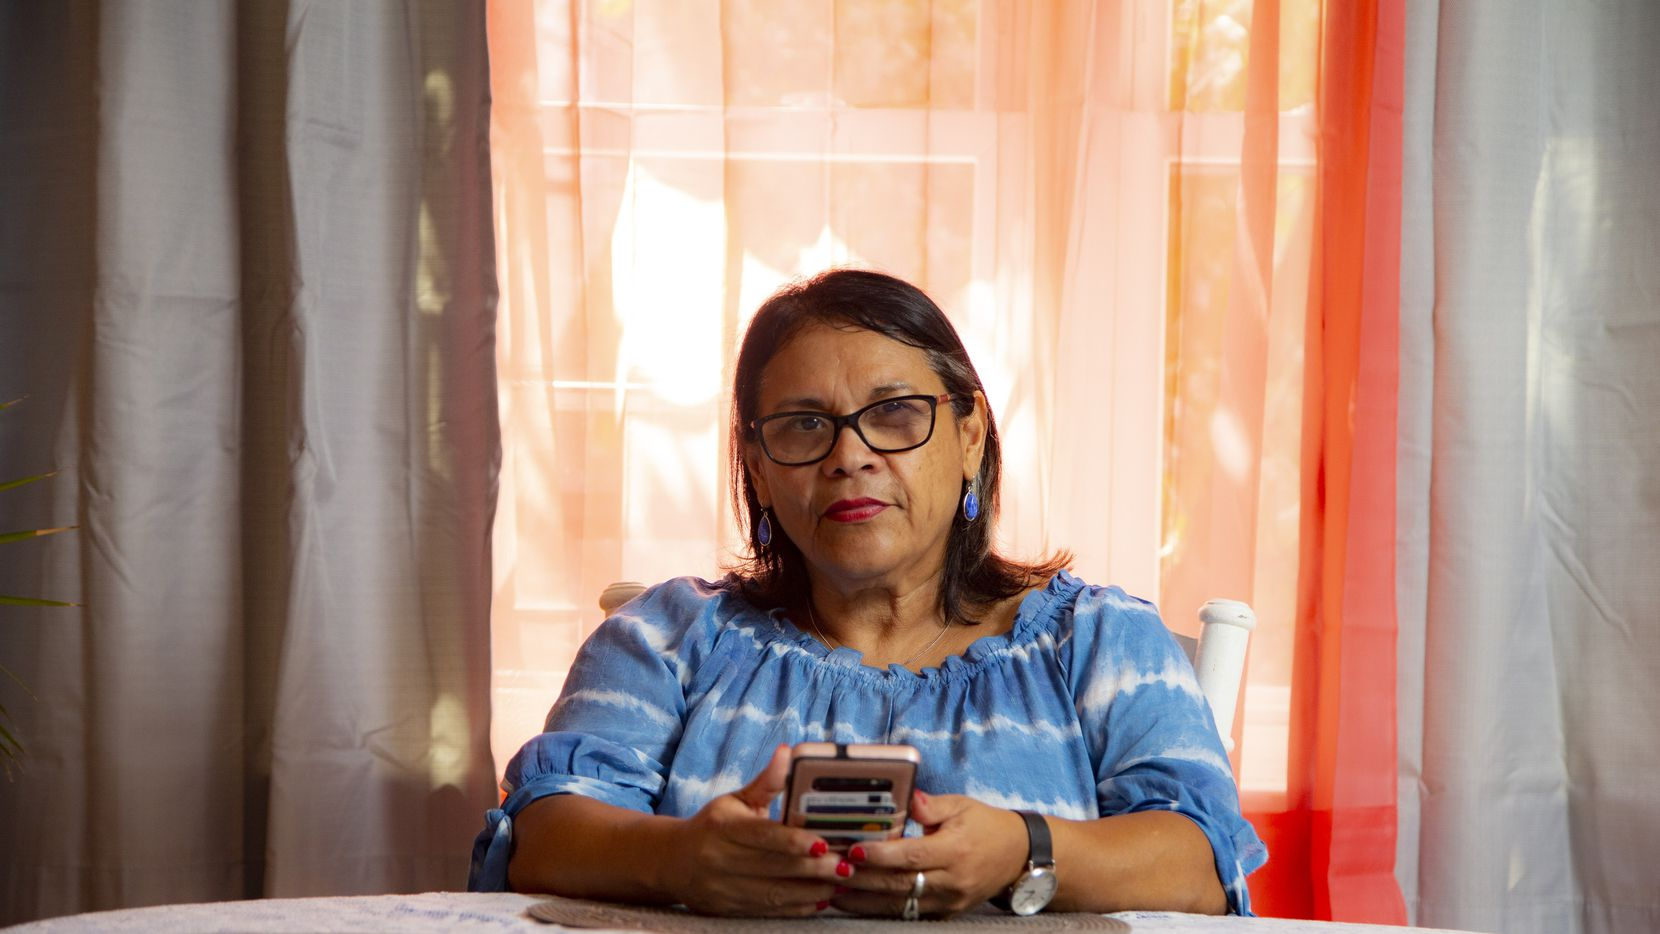 Myrna Mendez poses for a photo at her home in Dallas, Friday, September 3, 2021. Mendez sends money to her family in Mexico monthly and is part of the record-breaking flow of such money, known as remittances, into Mexico.